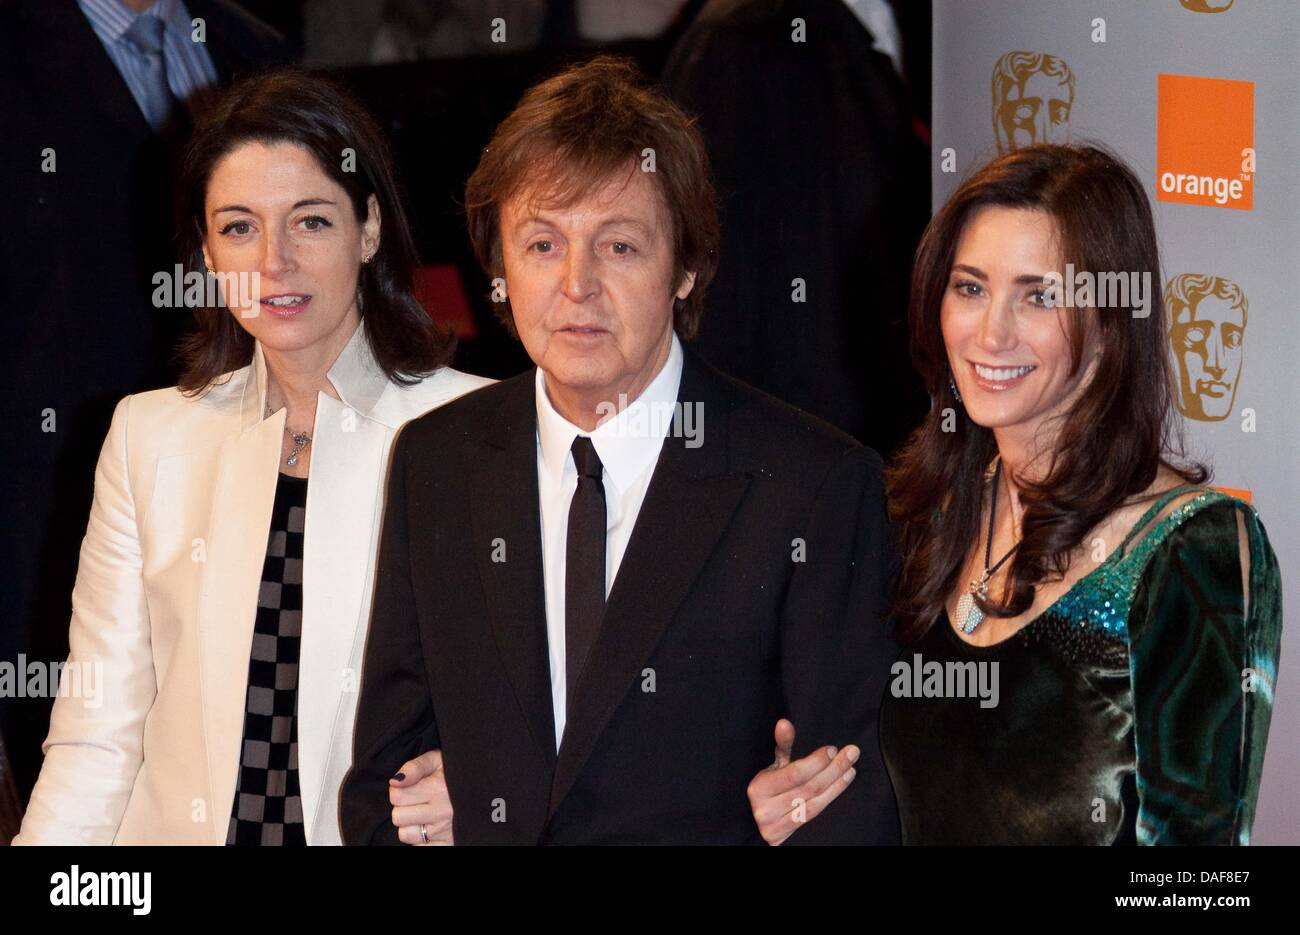 English Music Icon Paul McCartney C His Daughter Mary L And Partner Nancy Shevell R Attend The British Academy Film Awards BAFTA At Royal